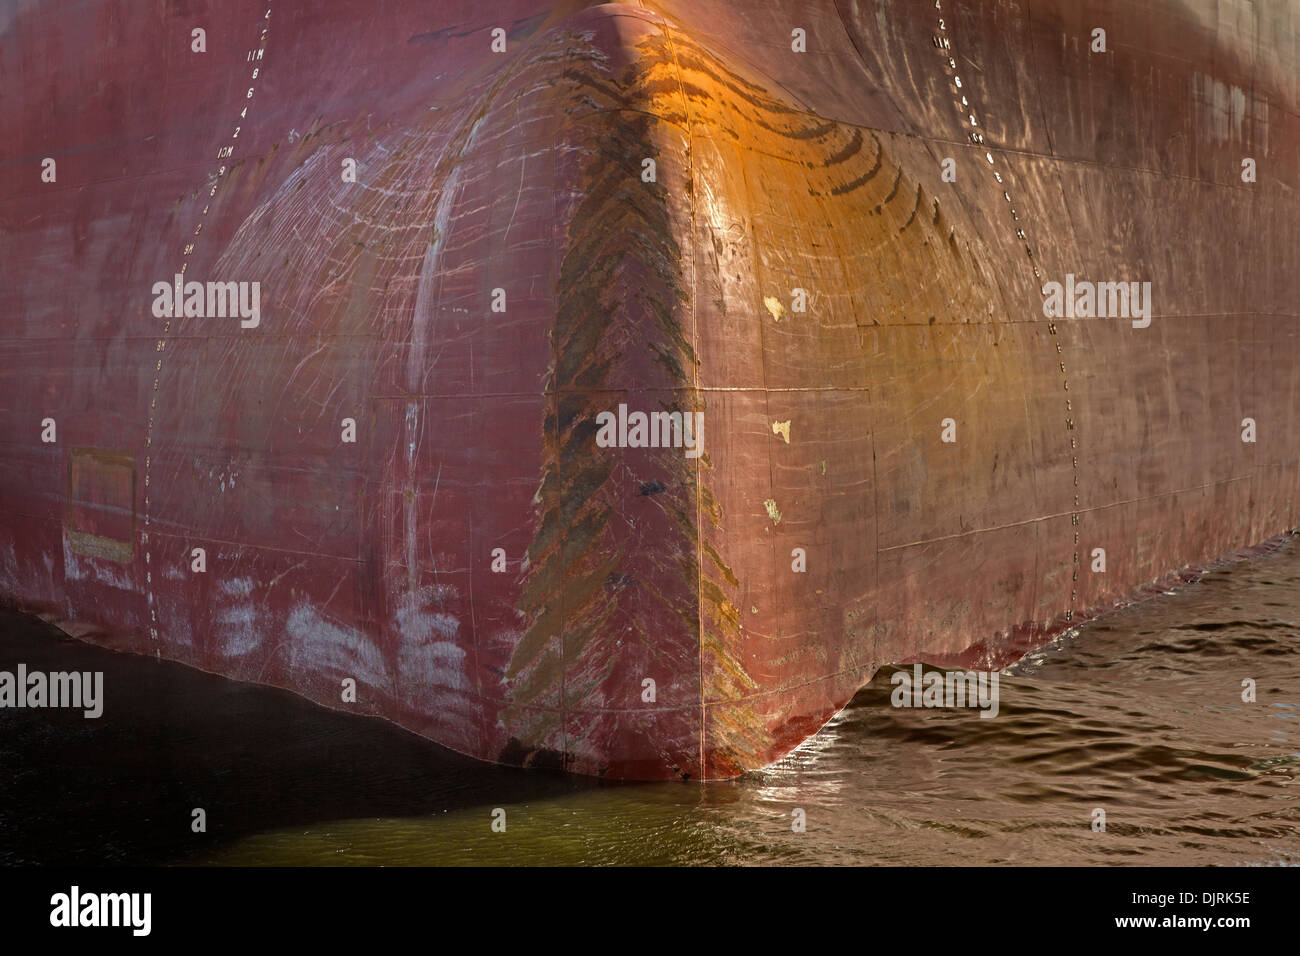 Bow of a ship, Hamburg harbour, Germany, Europe - Stock Image